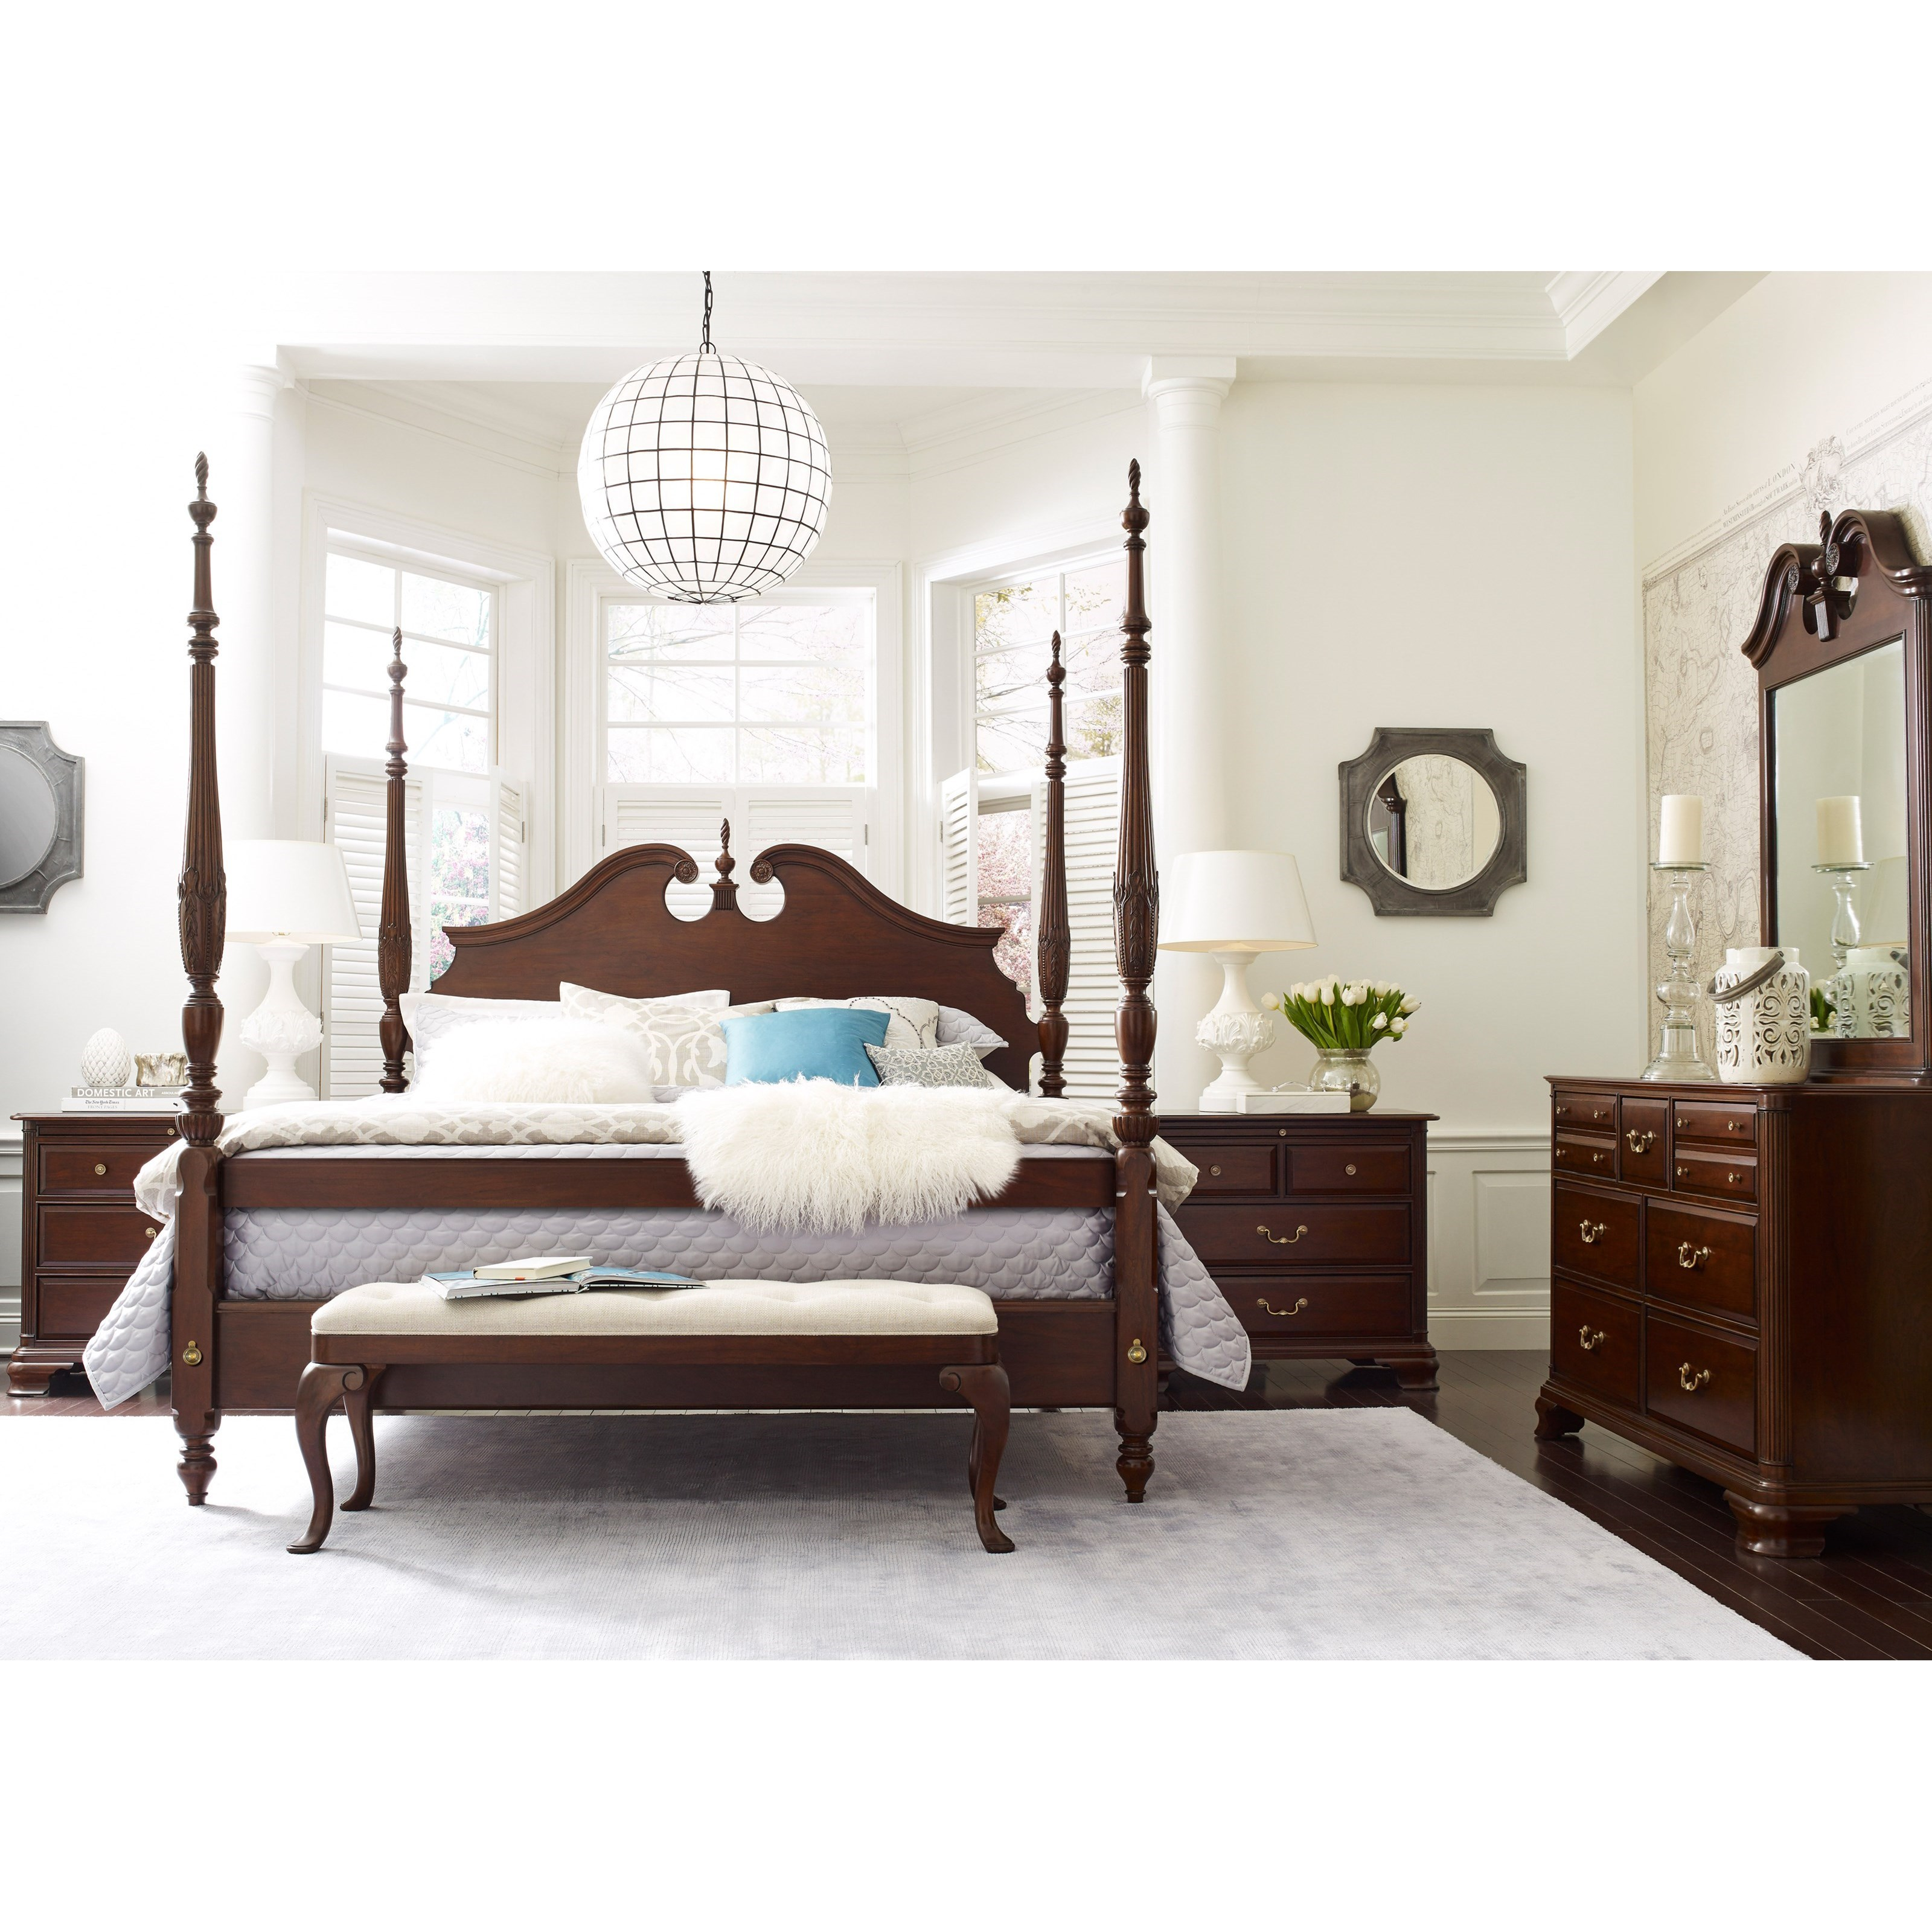 Hadleigh CK Bedroom Group by Kincaid Furniture at Northeast Factory Direct